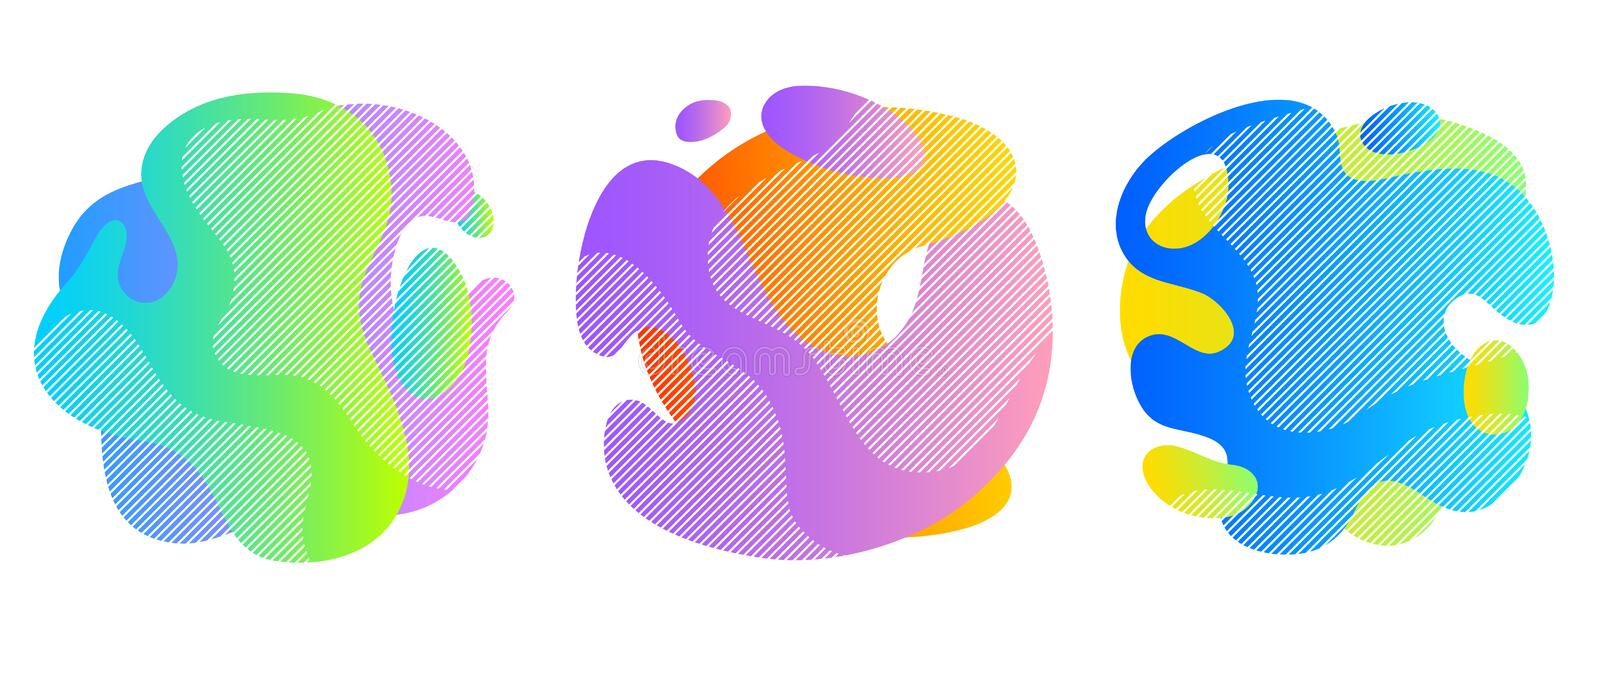 Colorful liquid shapes set. Abstract fluid blobs. Colorful liquid shapes set. Abstract fluid blobs background royalty free illustration